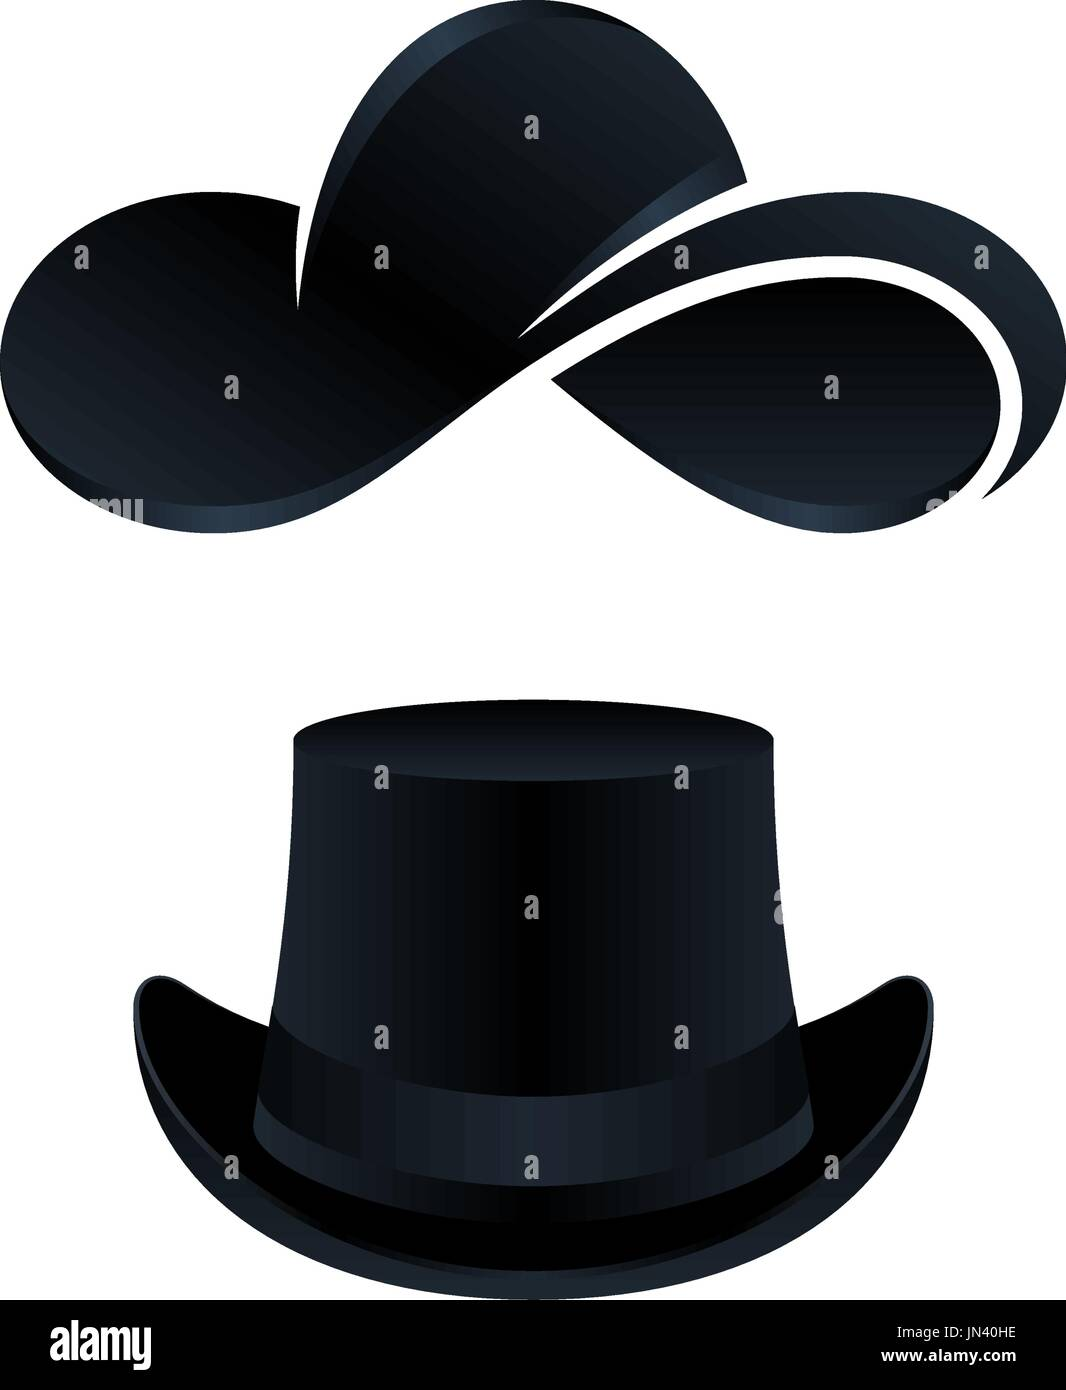 61fb1f45e7975 Design of black hat icons for men and women on white background. Vector  illustration icons.